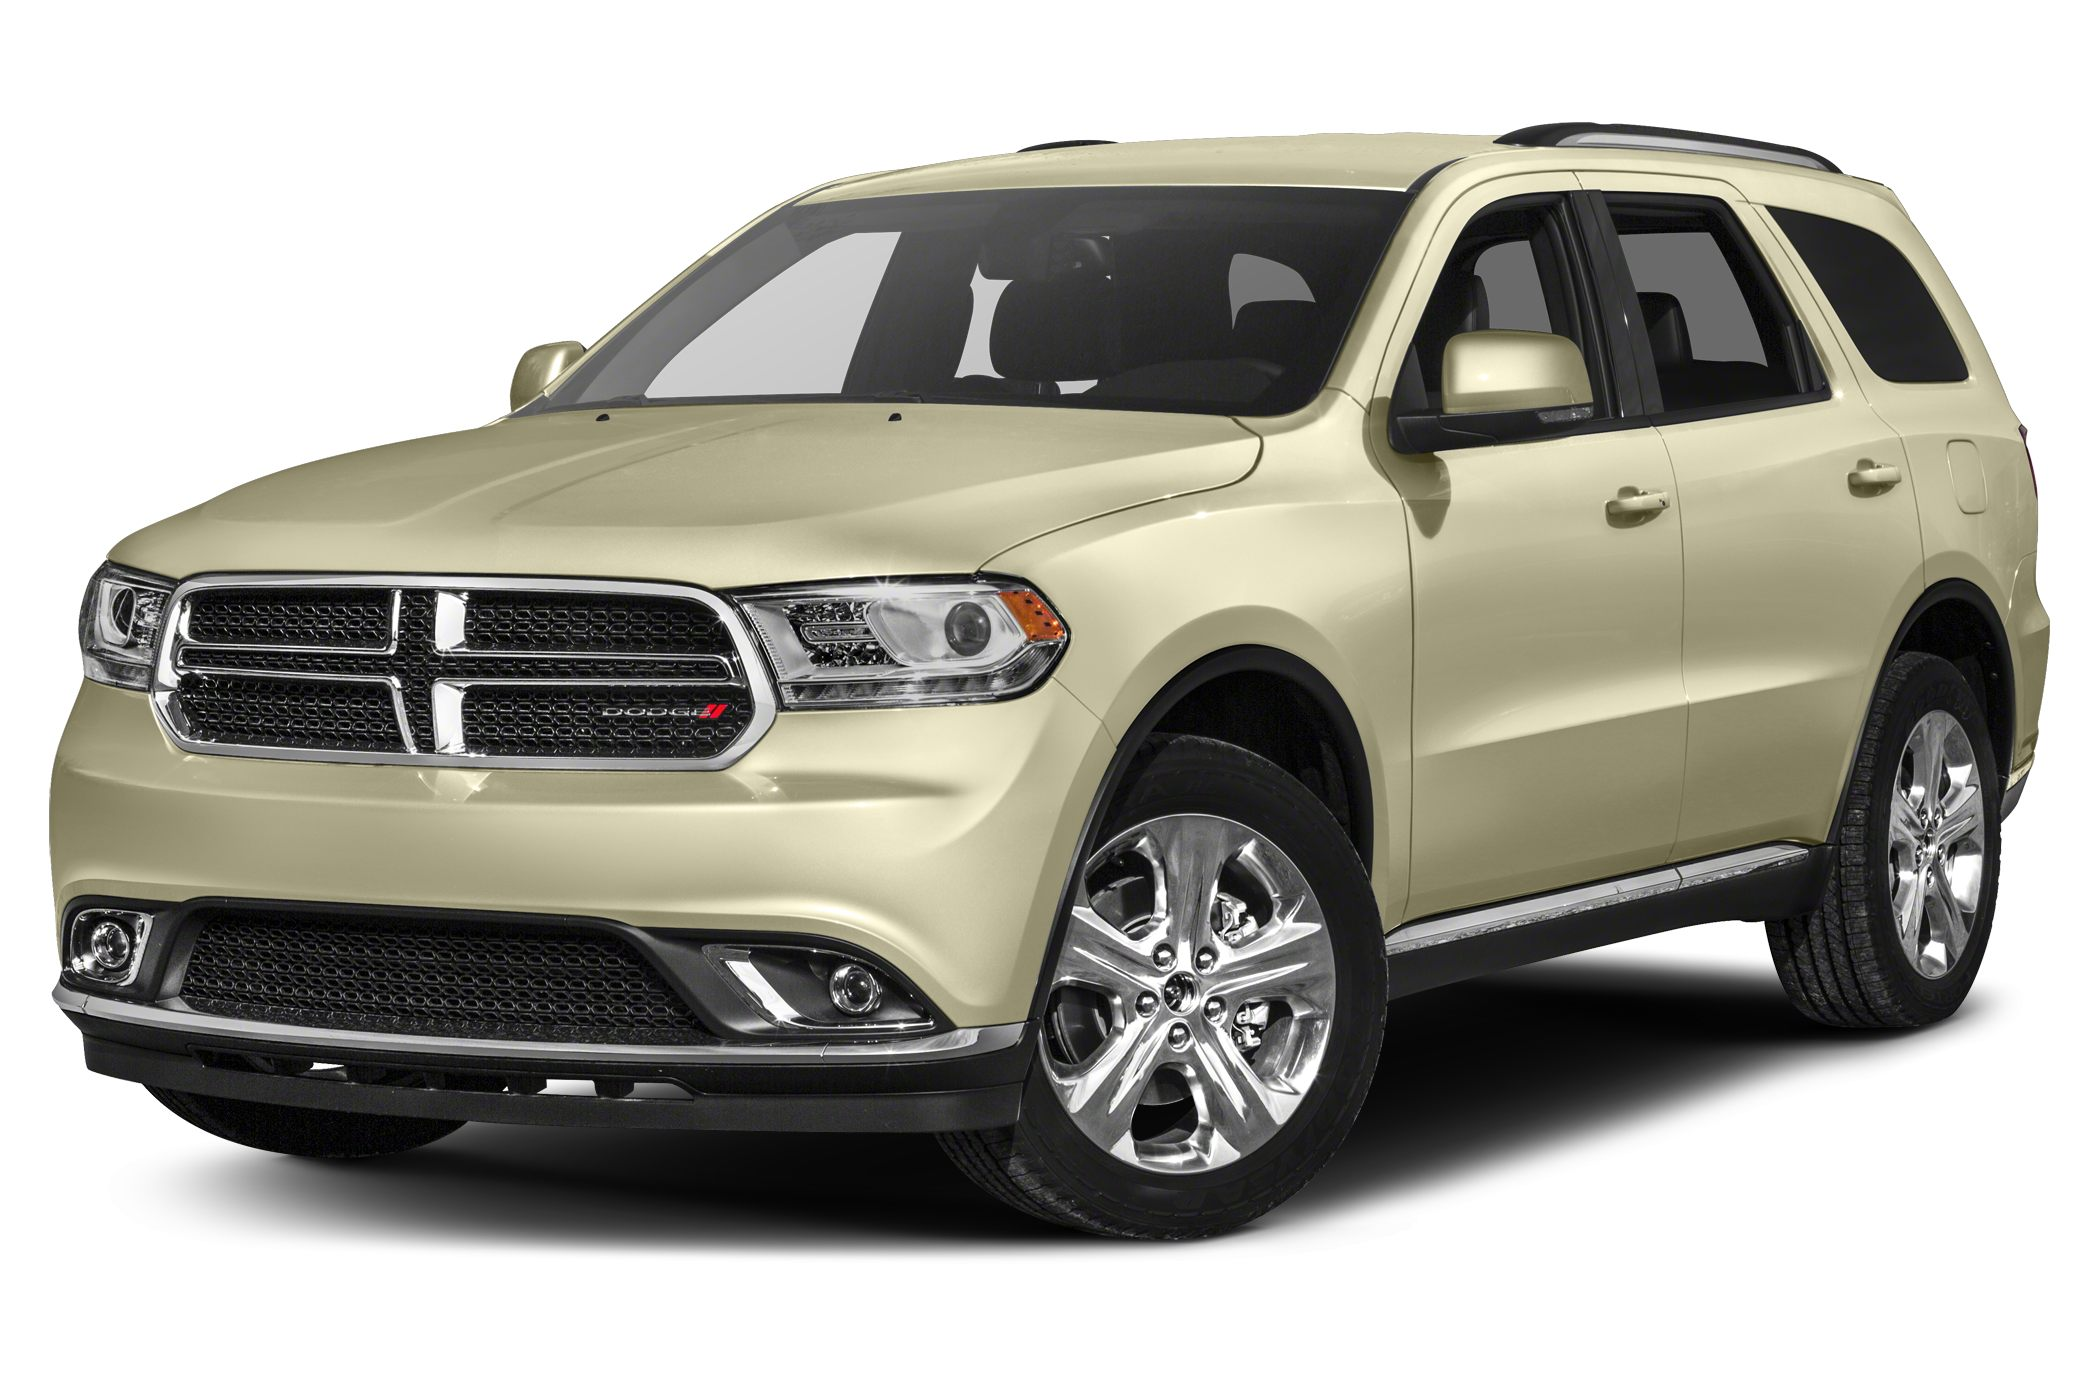 2014 Dodge Durango Limited This outstanding example of a 2014 Dodge Durango AWD 4dr Limited is off